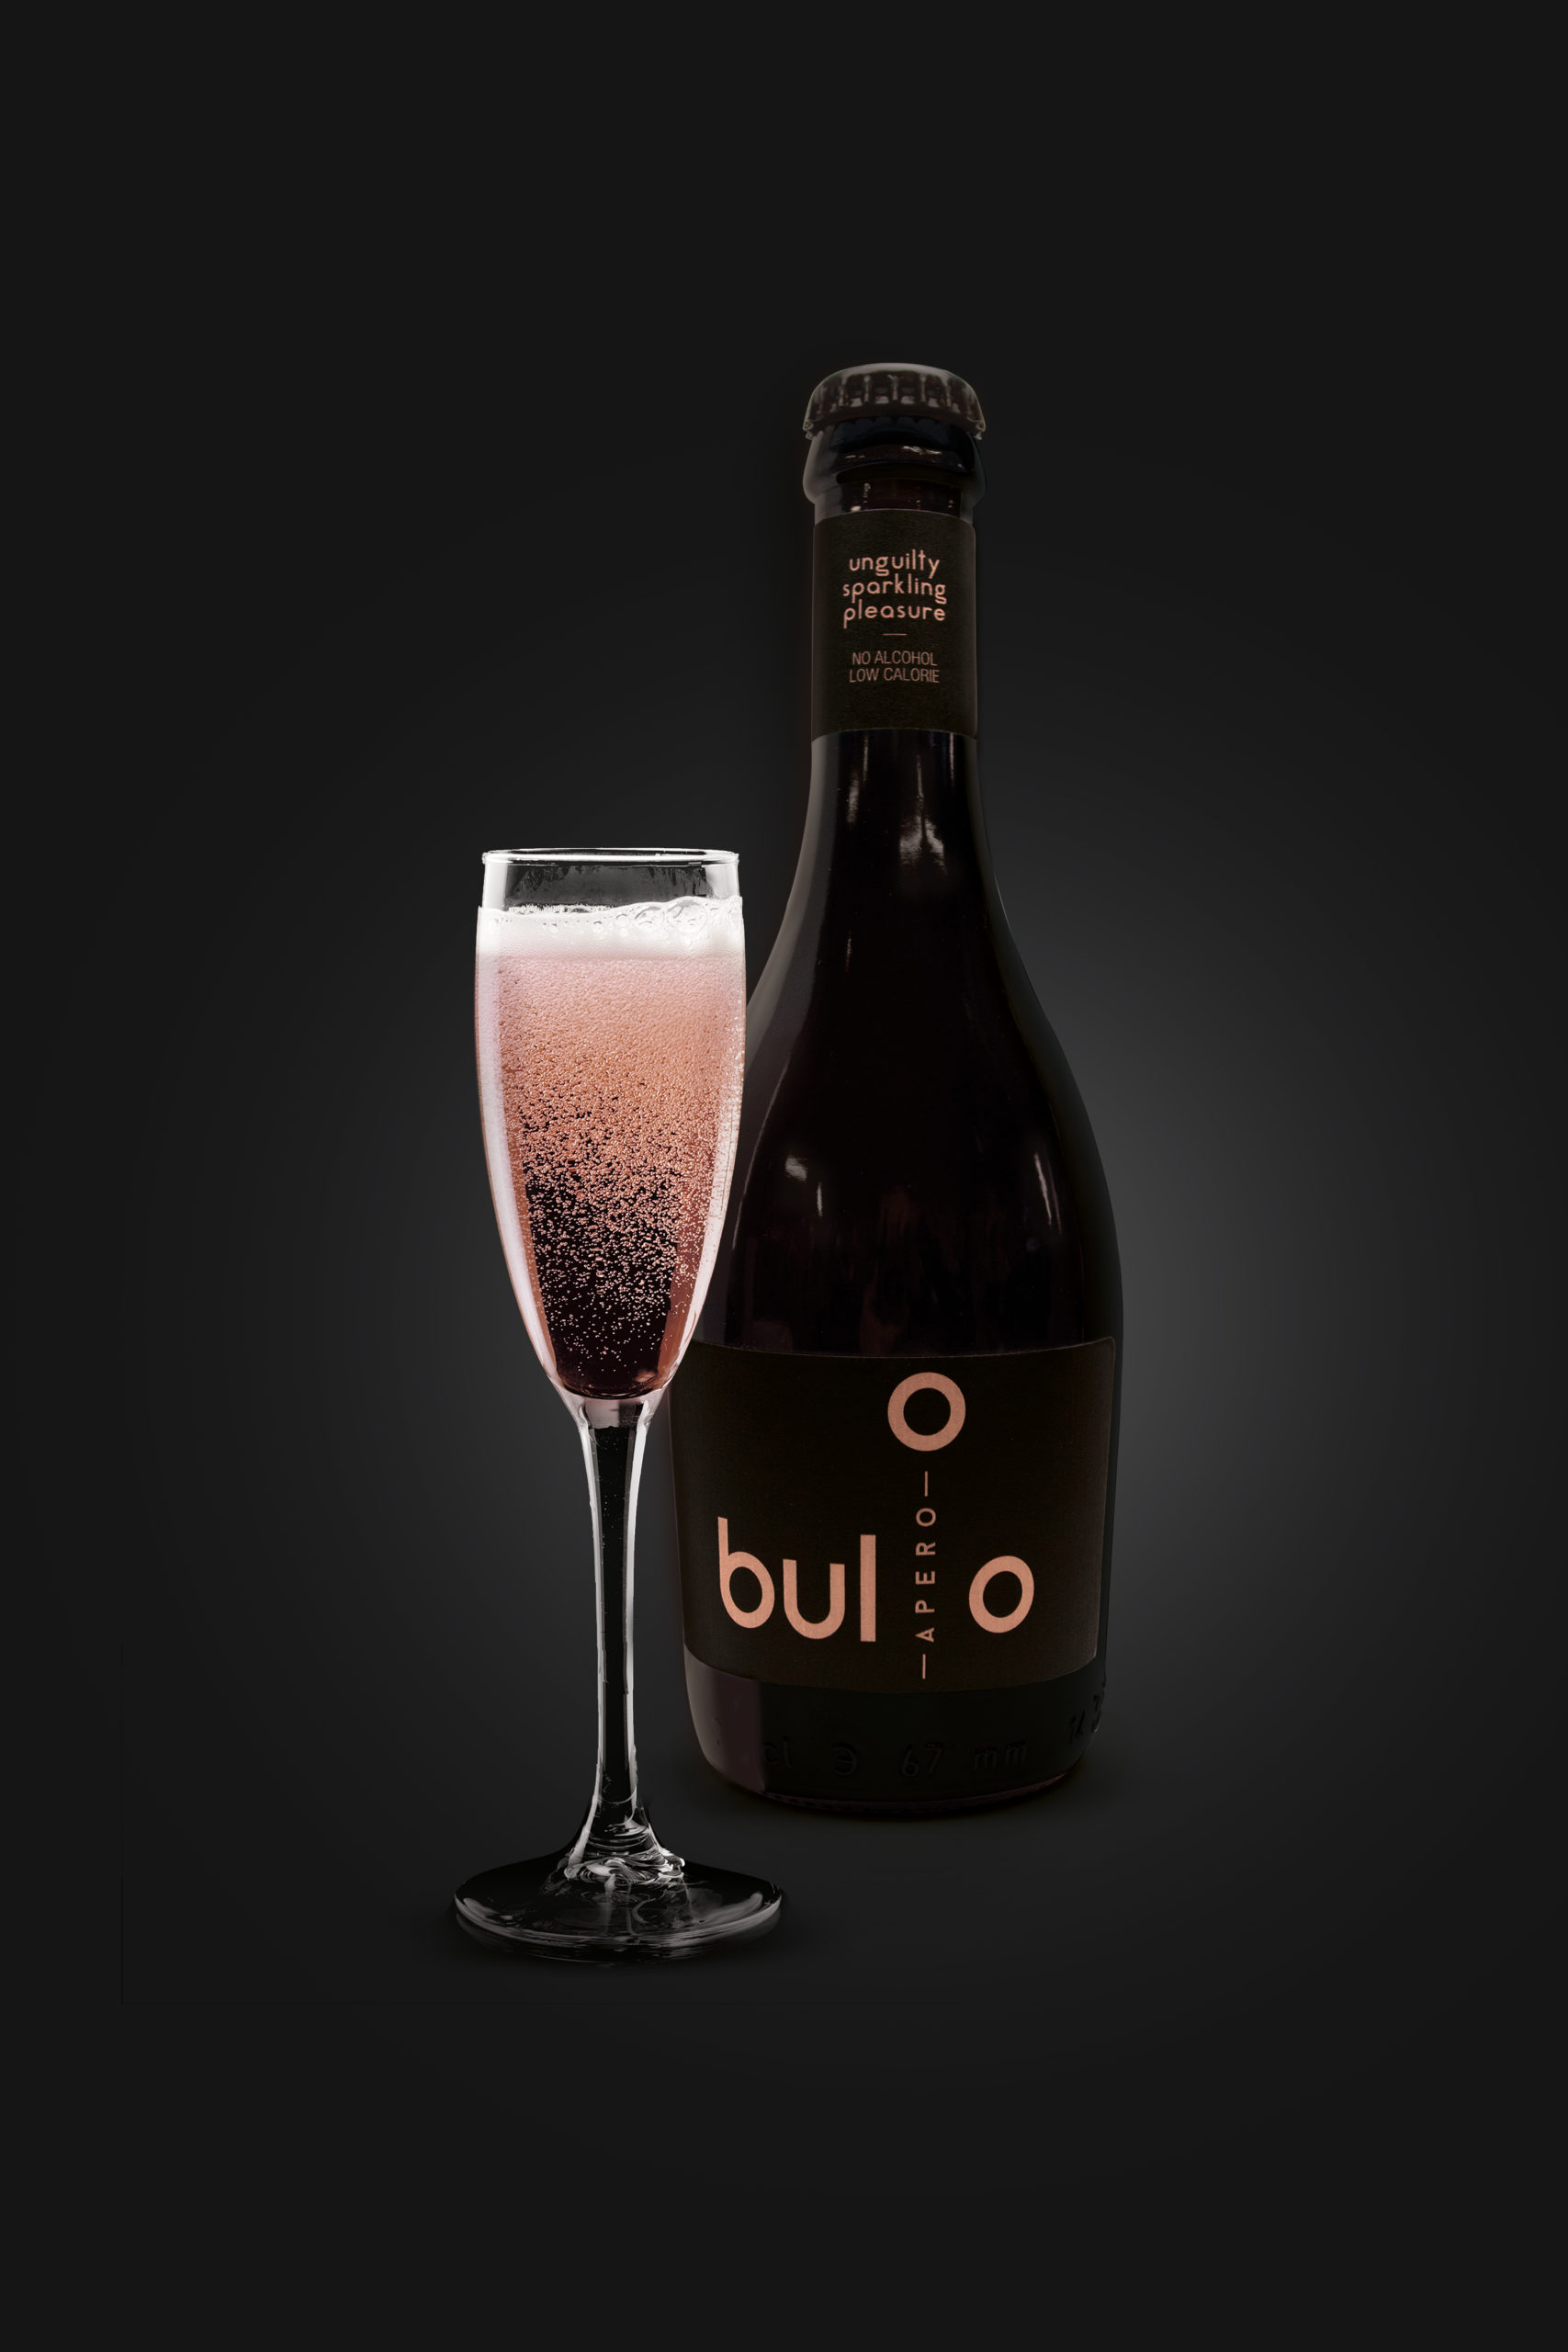 Buloo the new apero